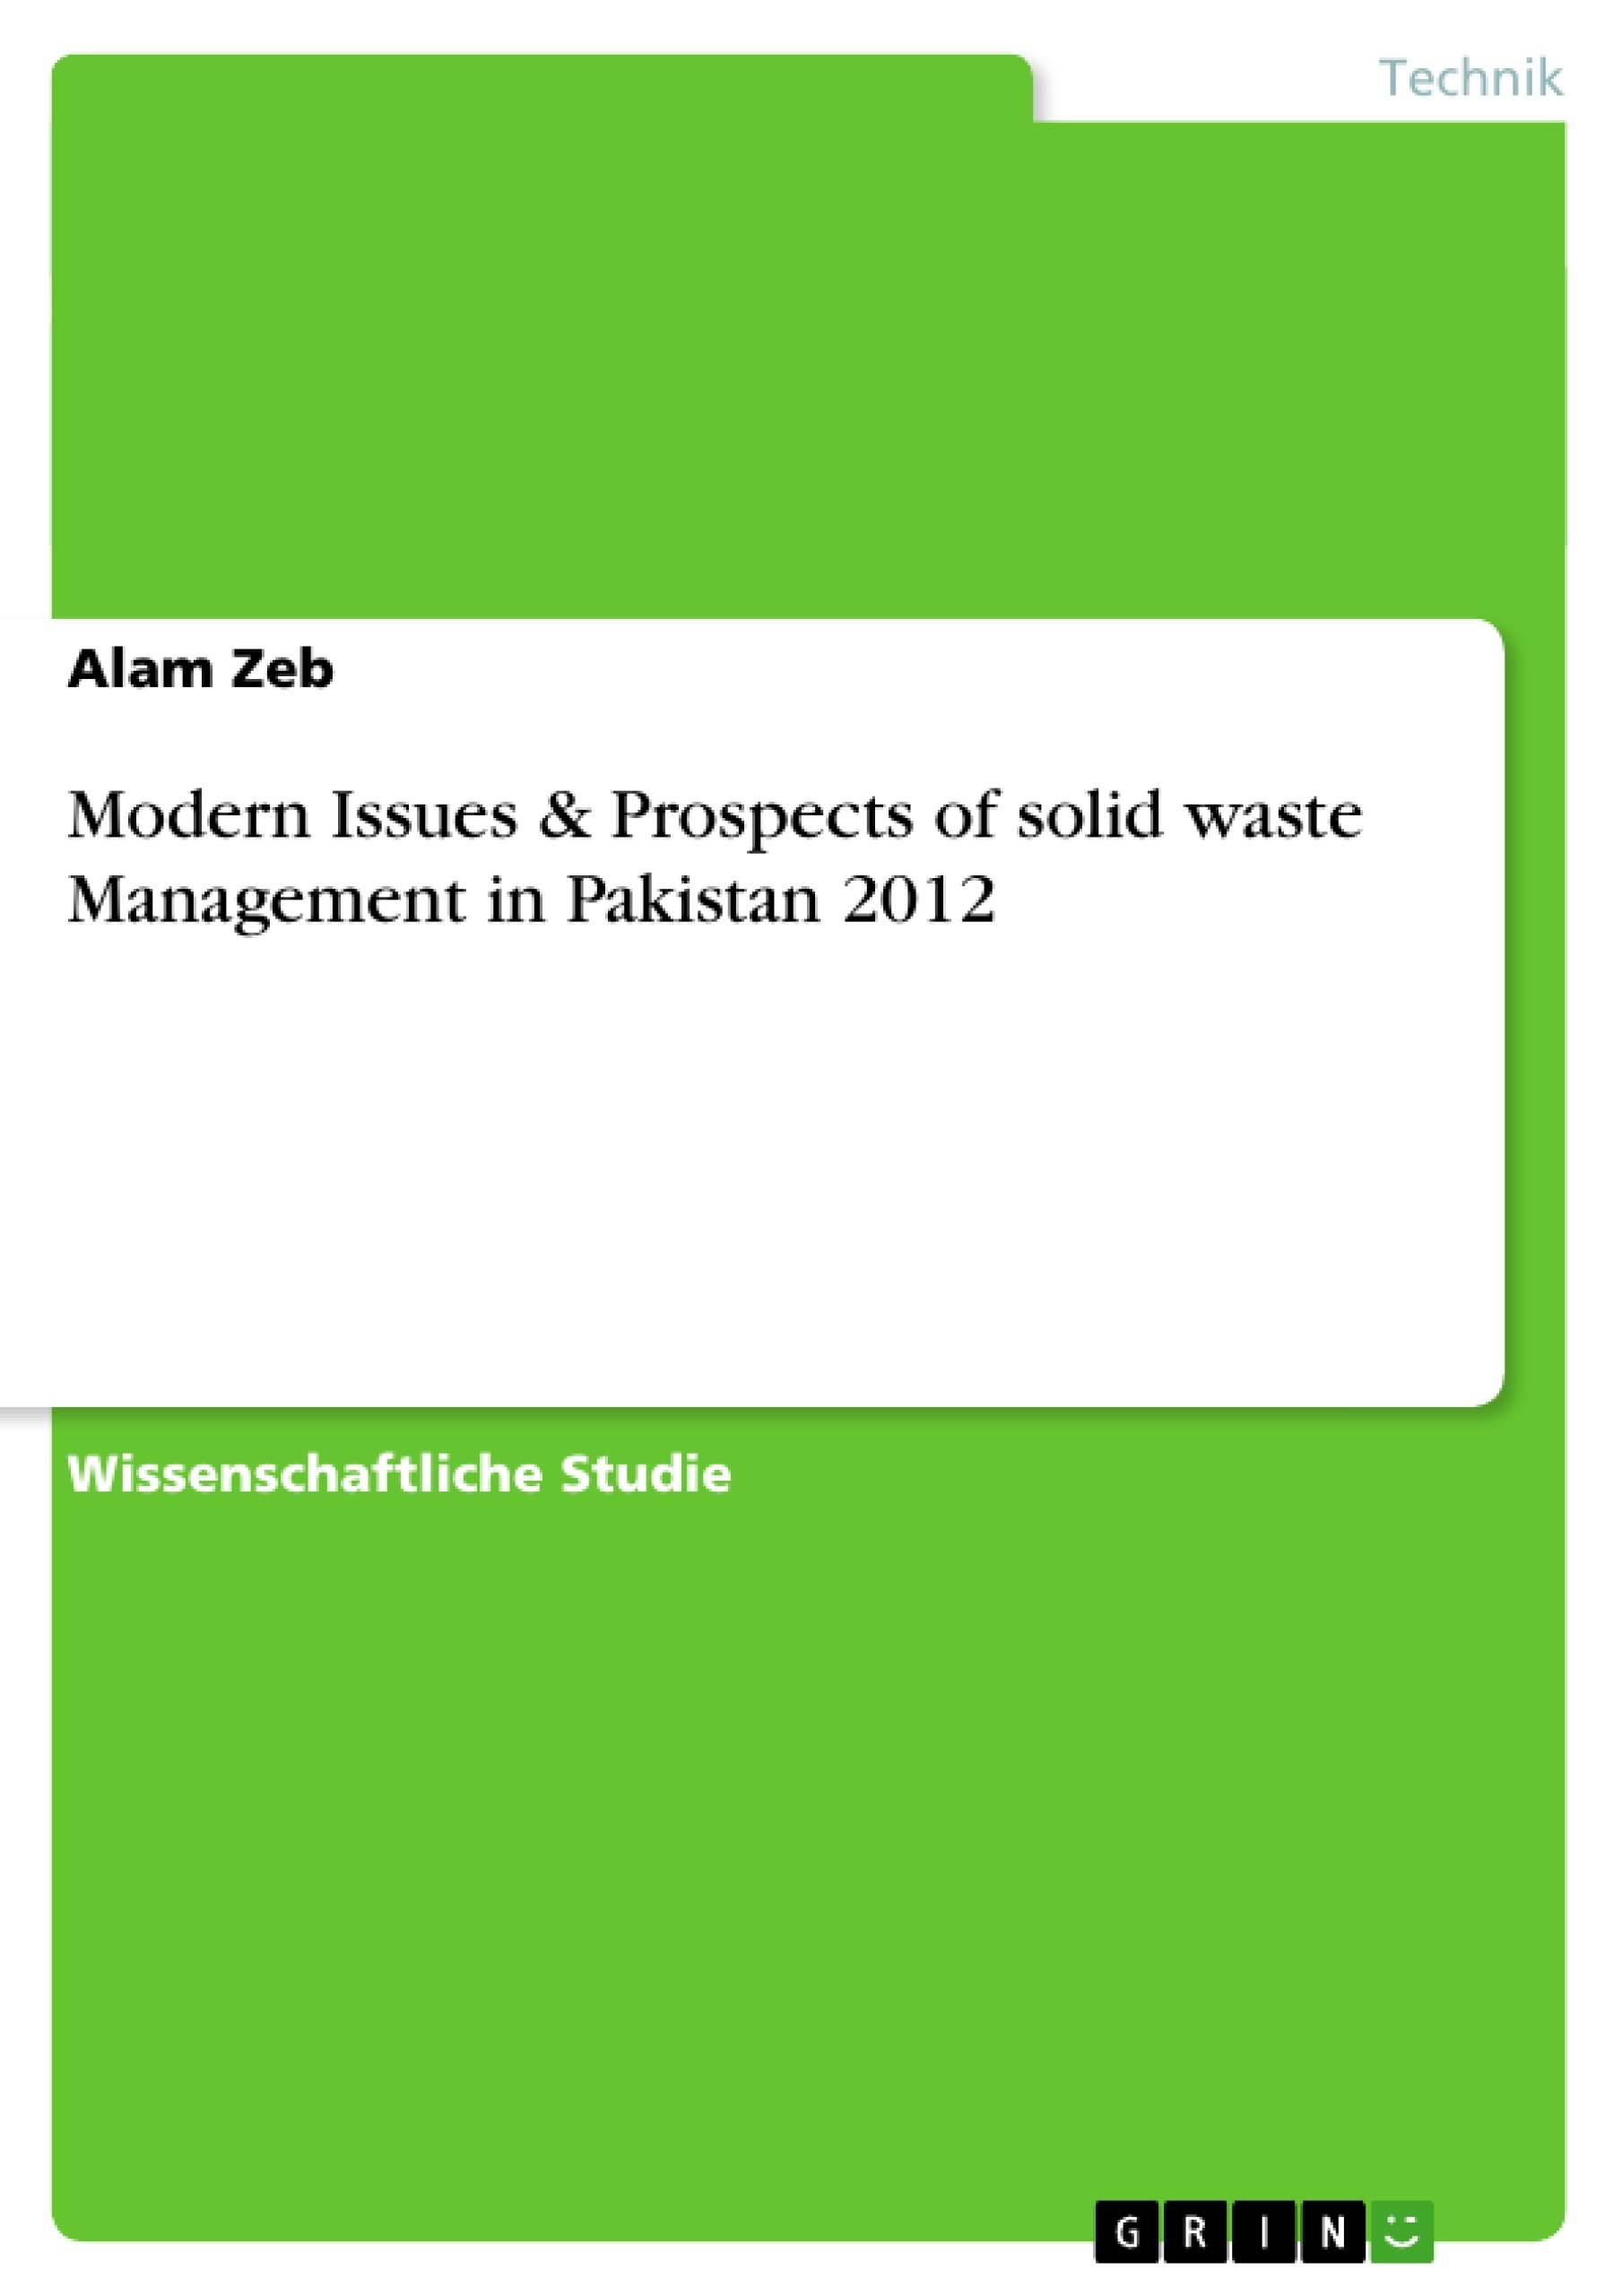 Titel: Modern Issues & Prospects of solid waste Management in Pakistan 2012